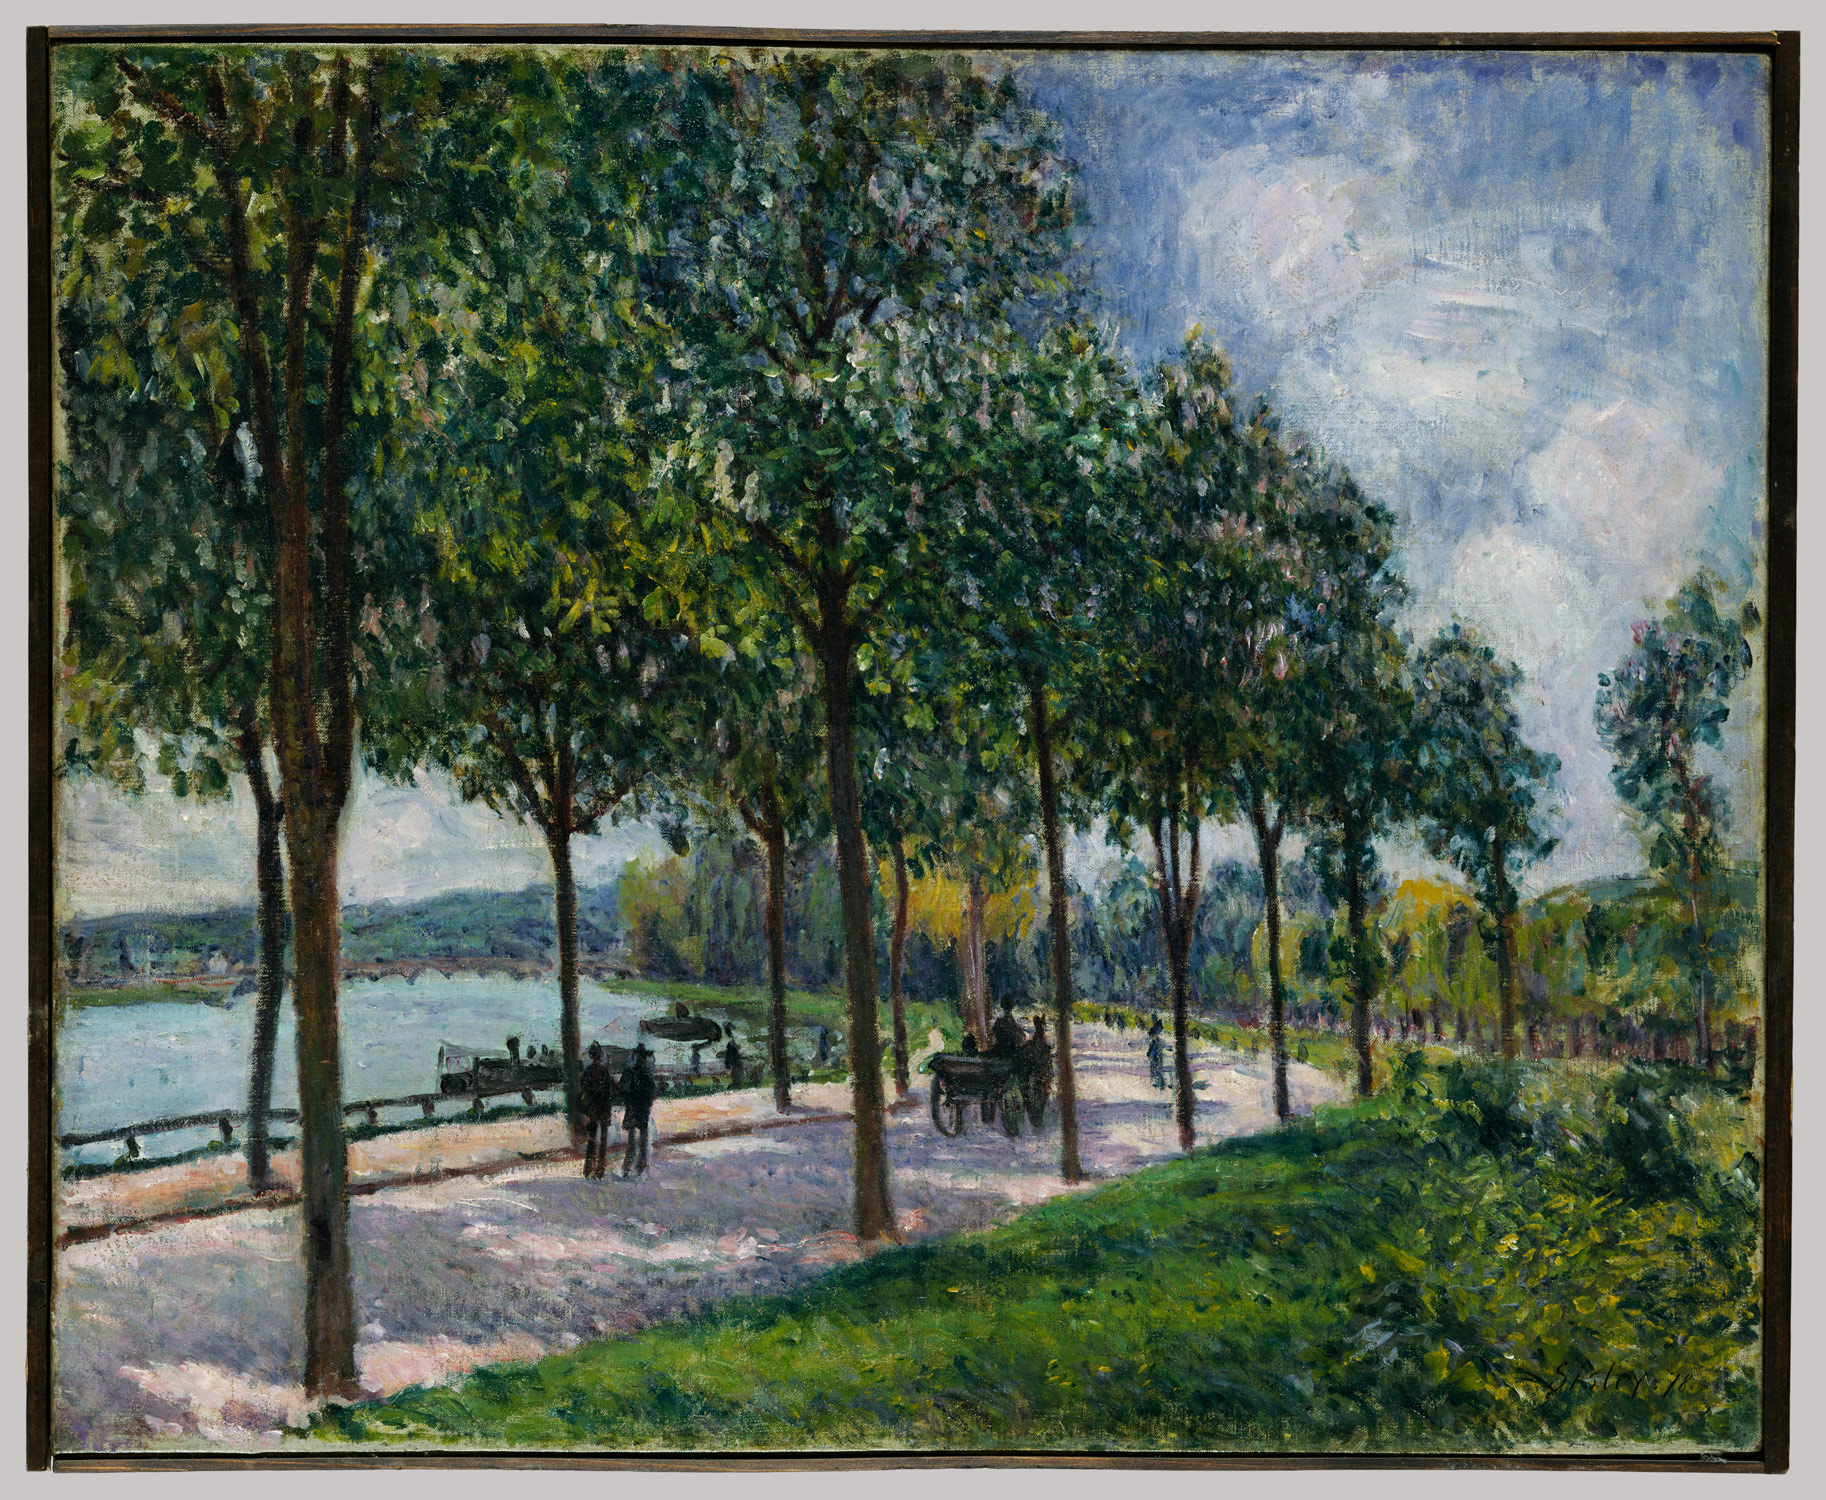 Allée of Chestnut Trees